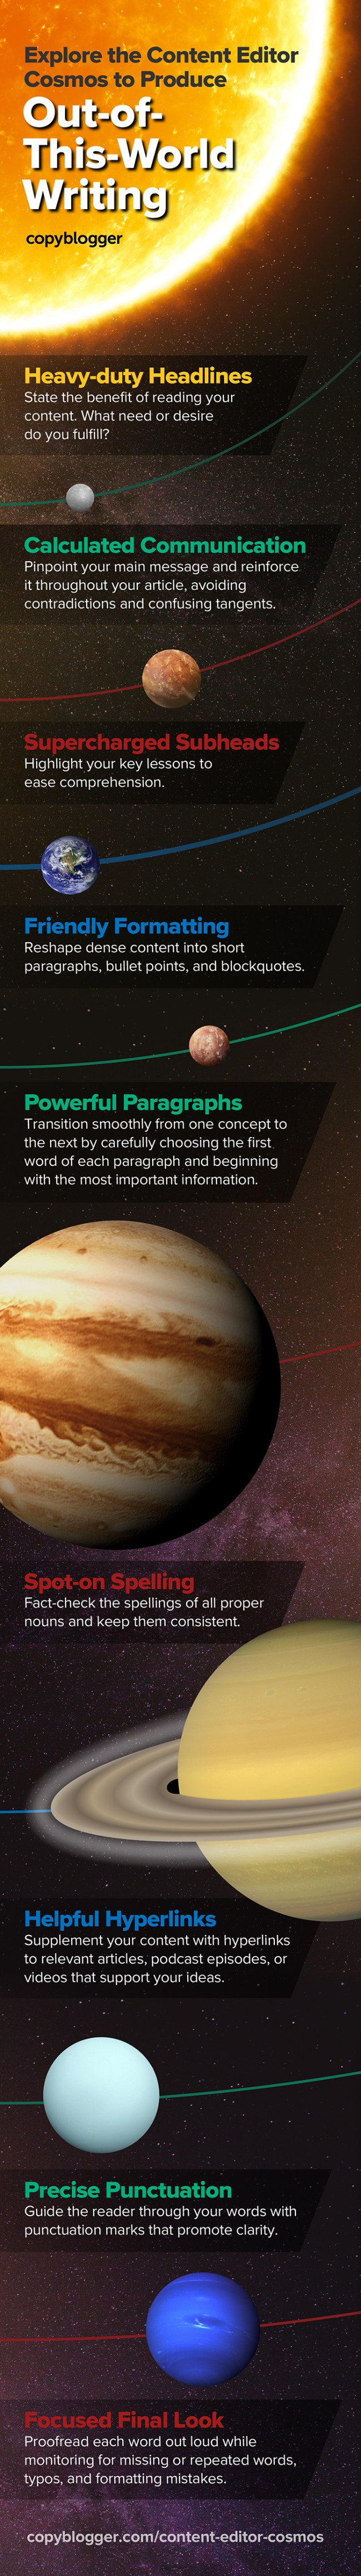 Explore the Content Editor Cosmos to Produce Out-of-This-World Writing [Infographic]